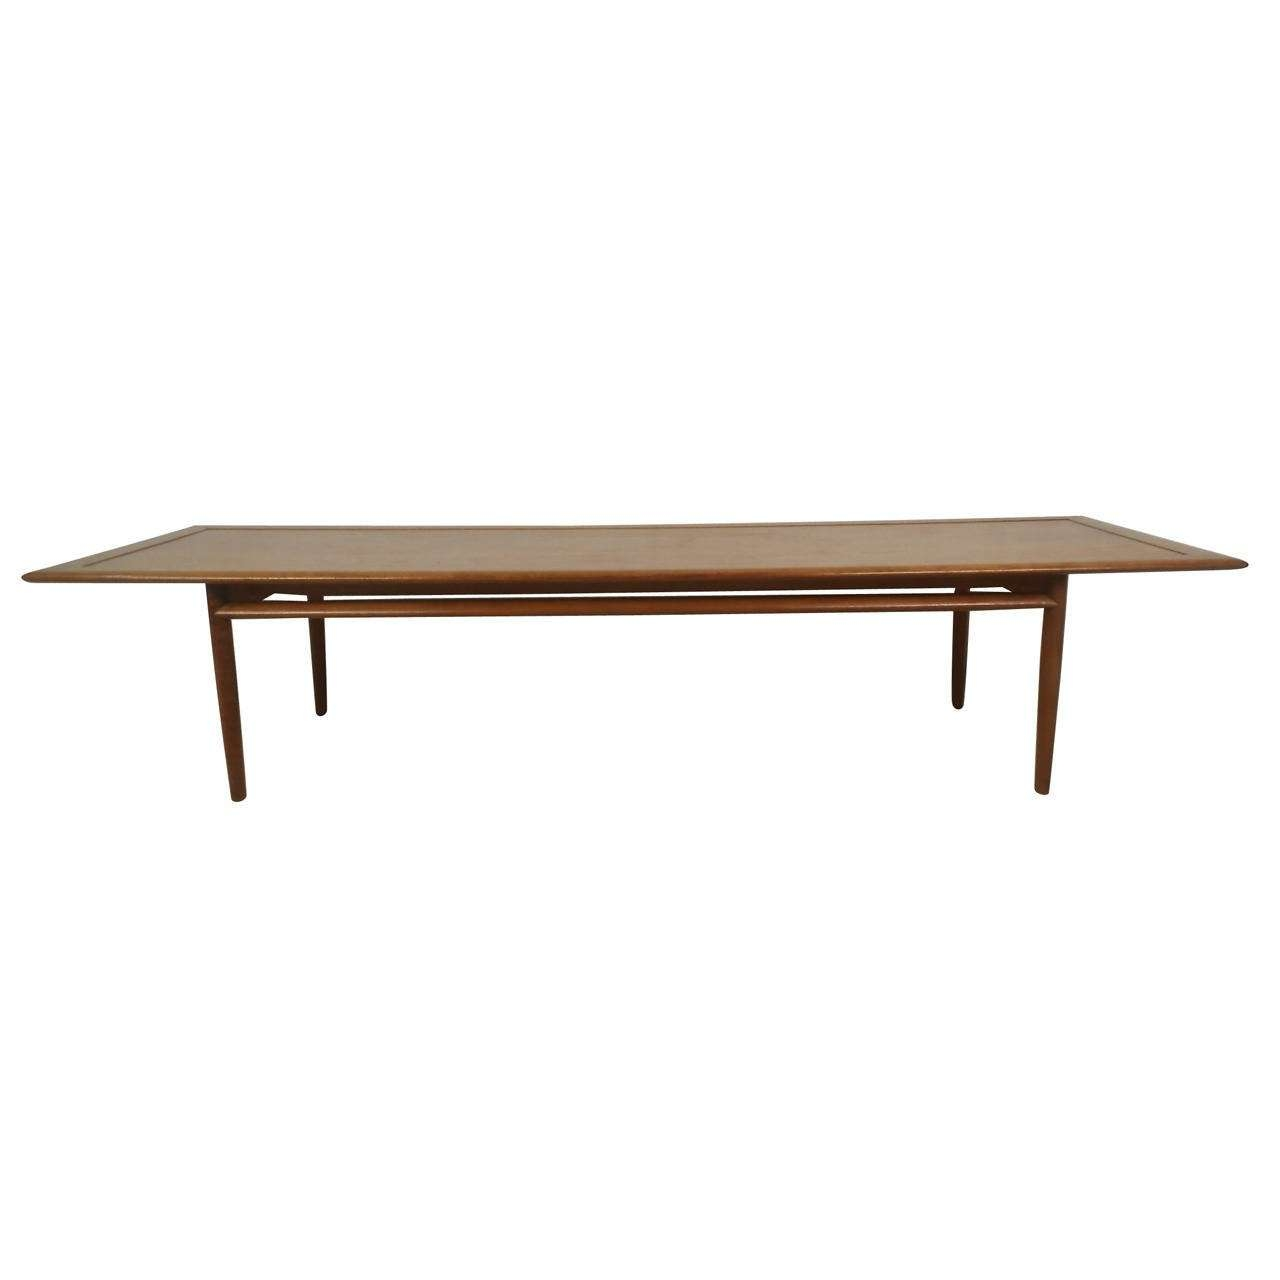 Long Coffee Table From Drexel Parallel Series For Sale At 1Stdibs Inside Current Long Coffee Tables (View 12 of 20)